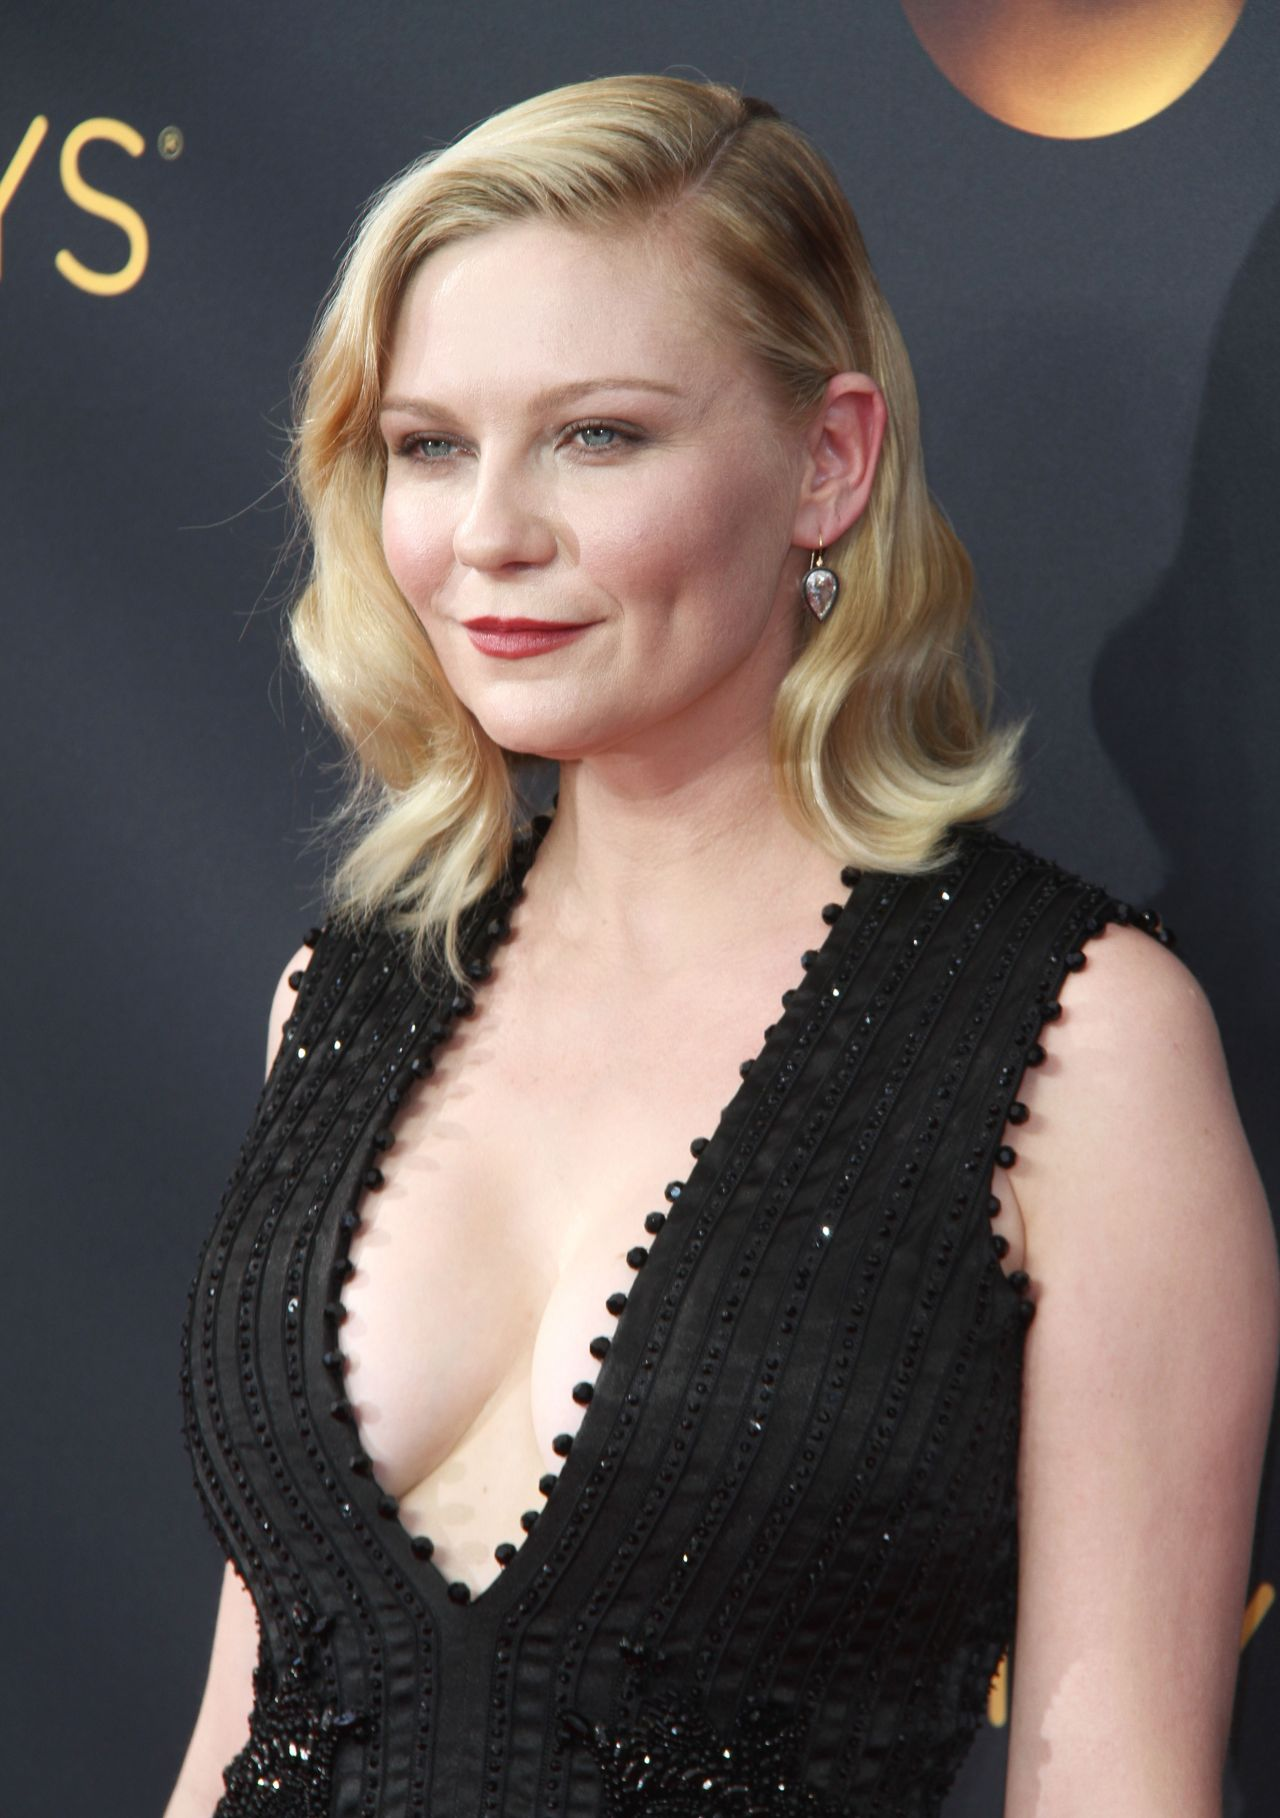 Kirsten Dunst 68th Annual Emmy Awards In Los Angeles 09